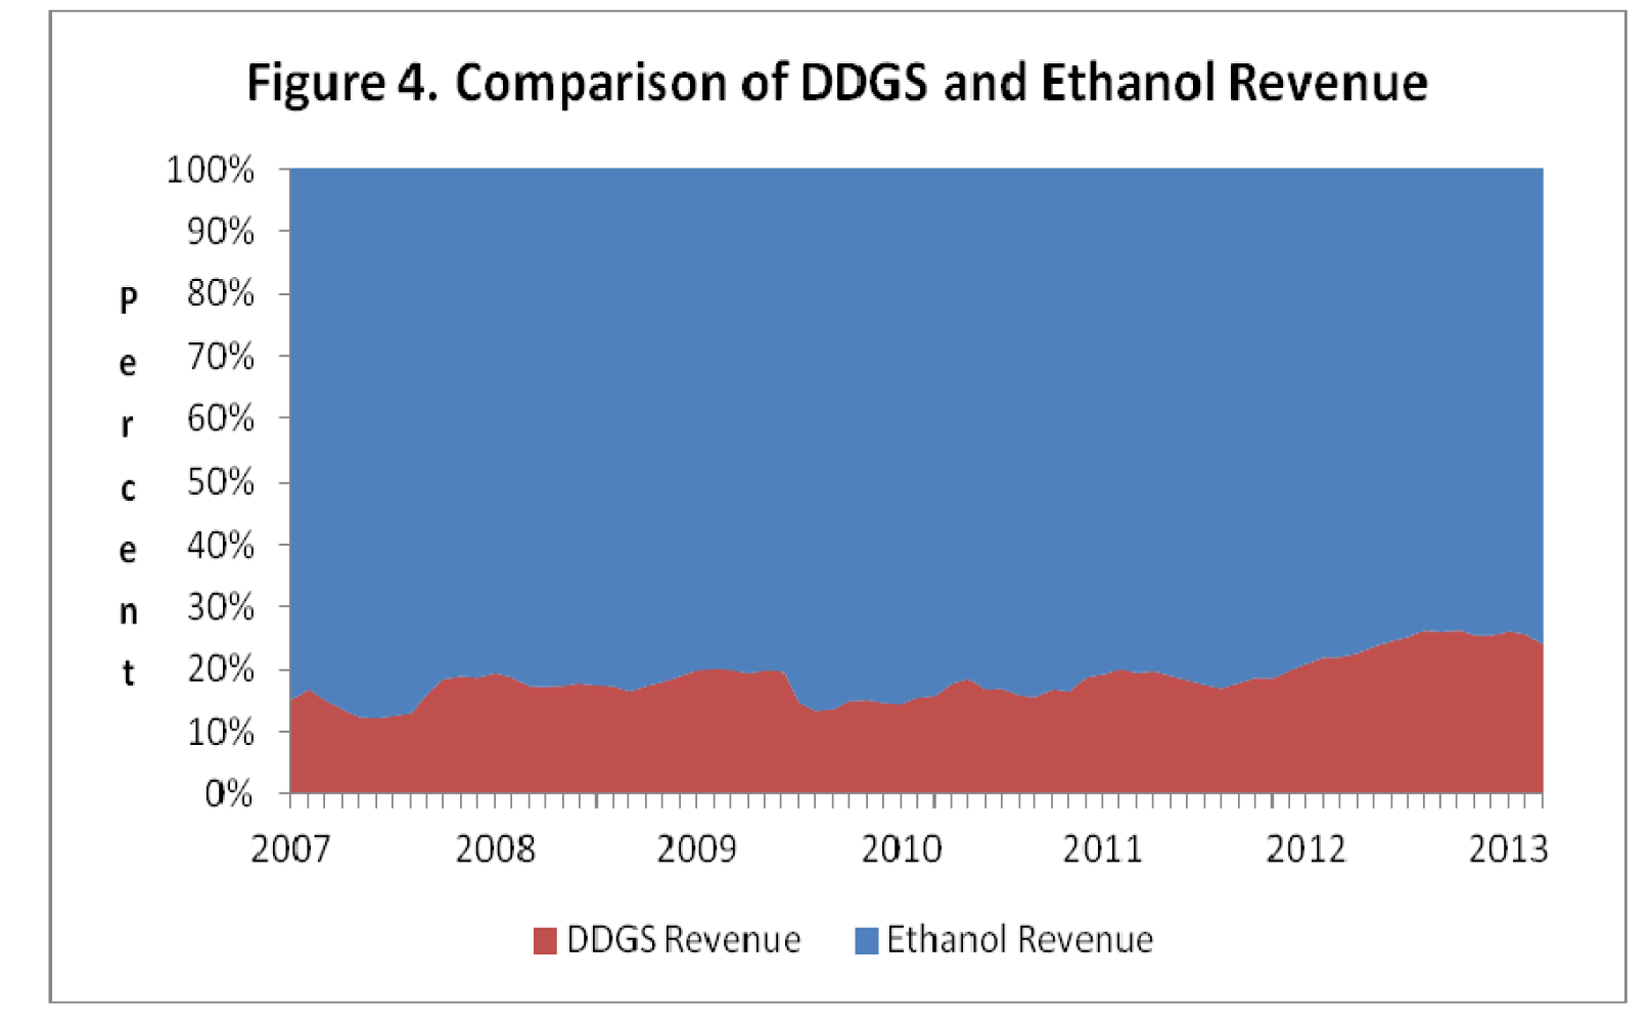 Comparison of DDGS and ethnol revenue